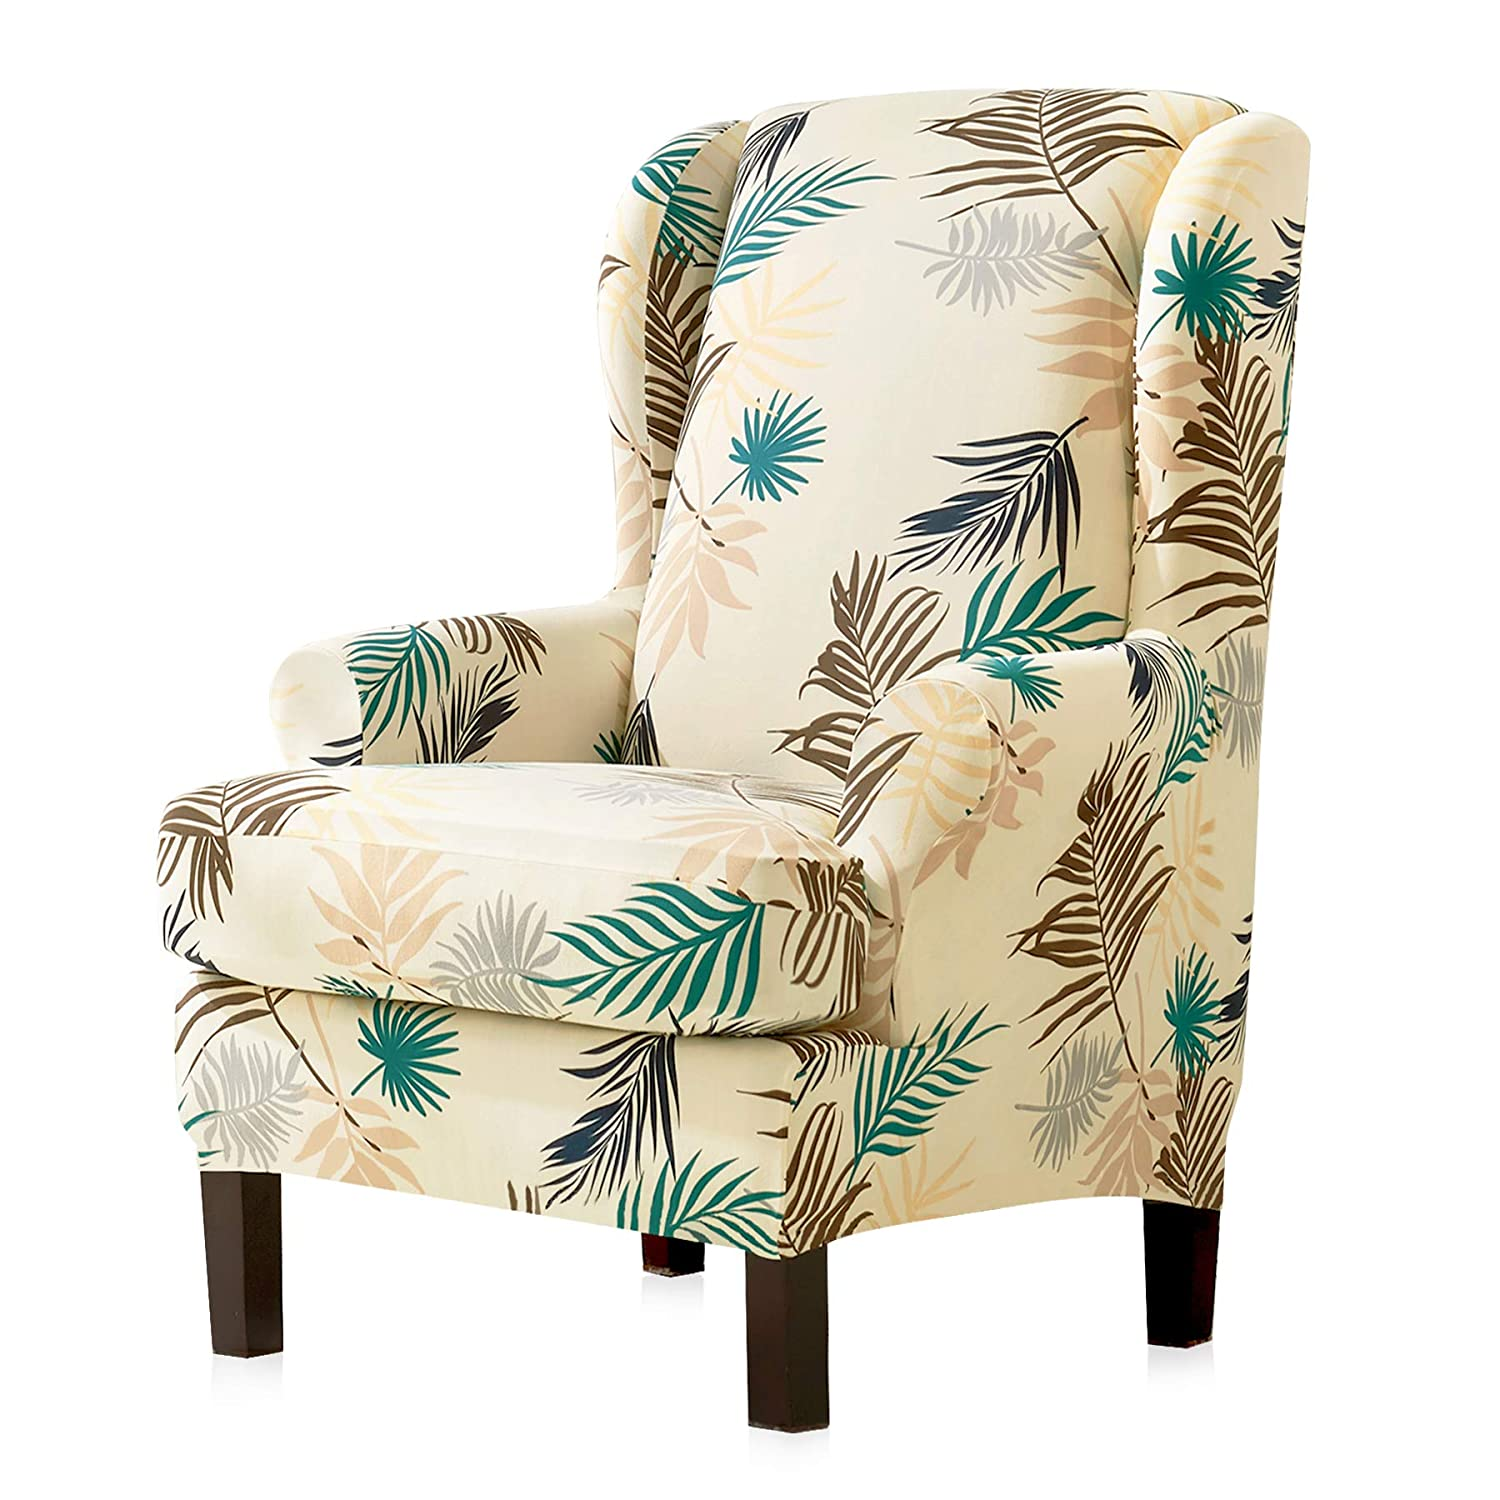 Exceptionnel Amazon.com: Subrtex 2pcs Wing Chair Slipcovers Stretchy Wingback Armchair  Covers Detachable Spandex Sofa Covers Leaves Printed Furniture Protector  (Yellow): ...